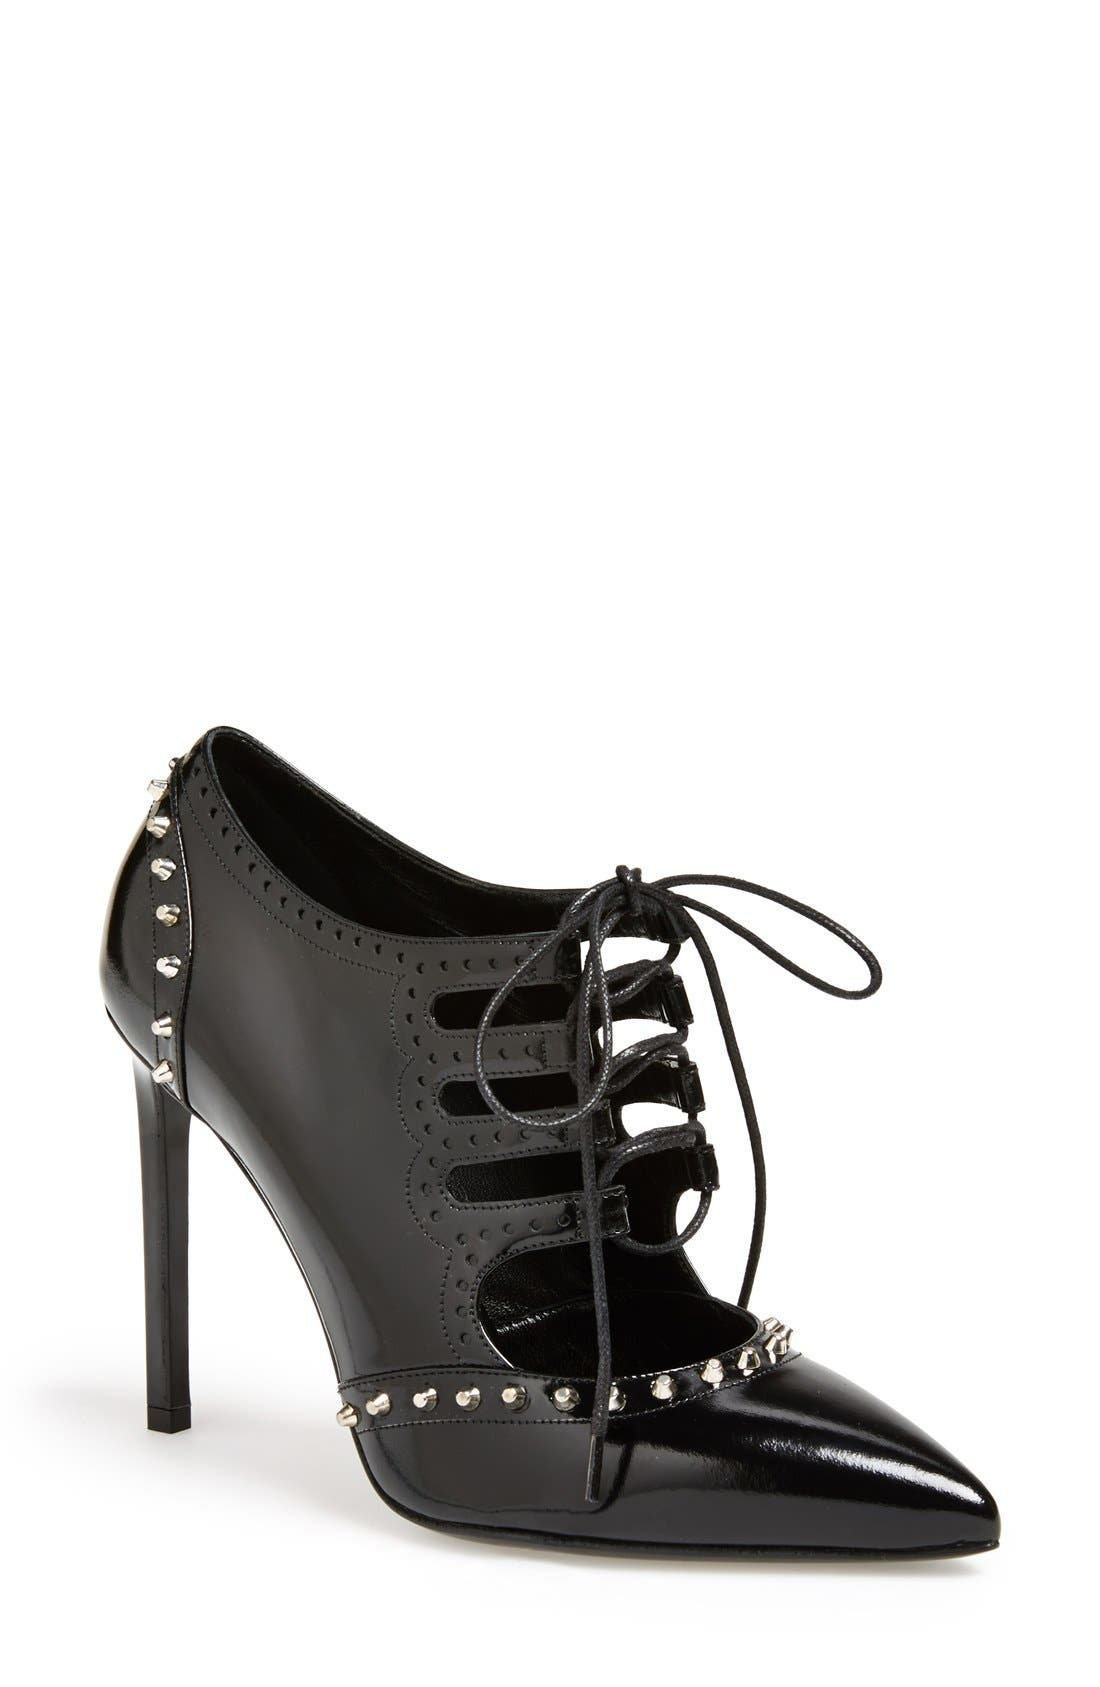 Main Image - Saint Laurent Lace-Up Pointed Toe Bootie (Women)